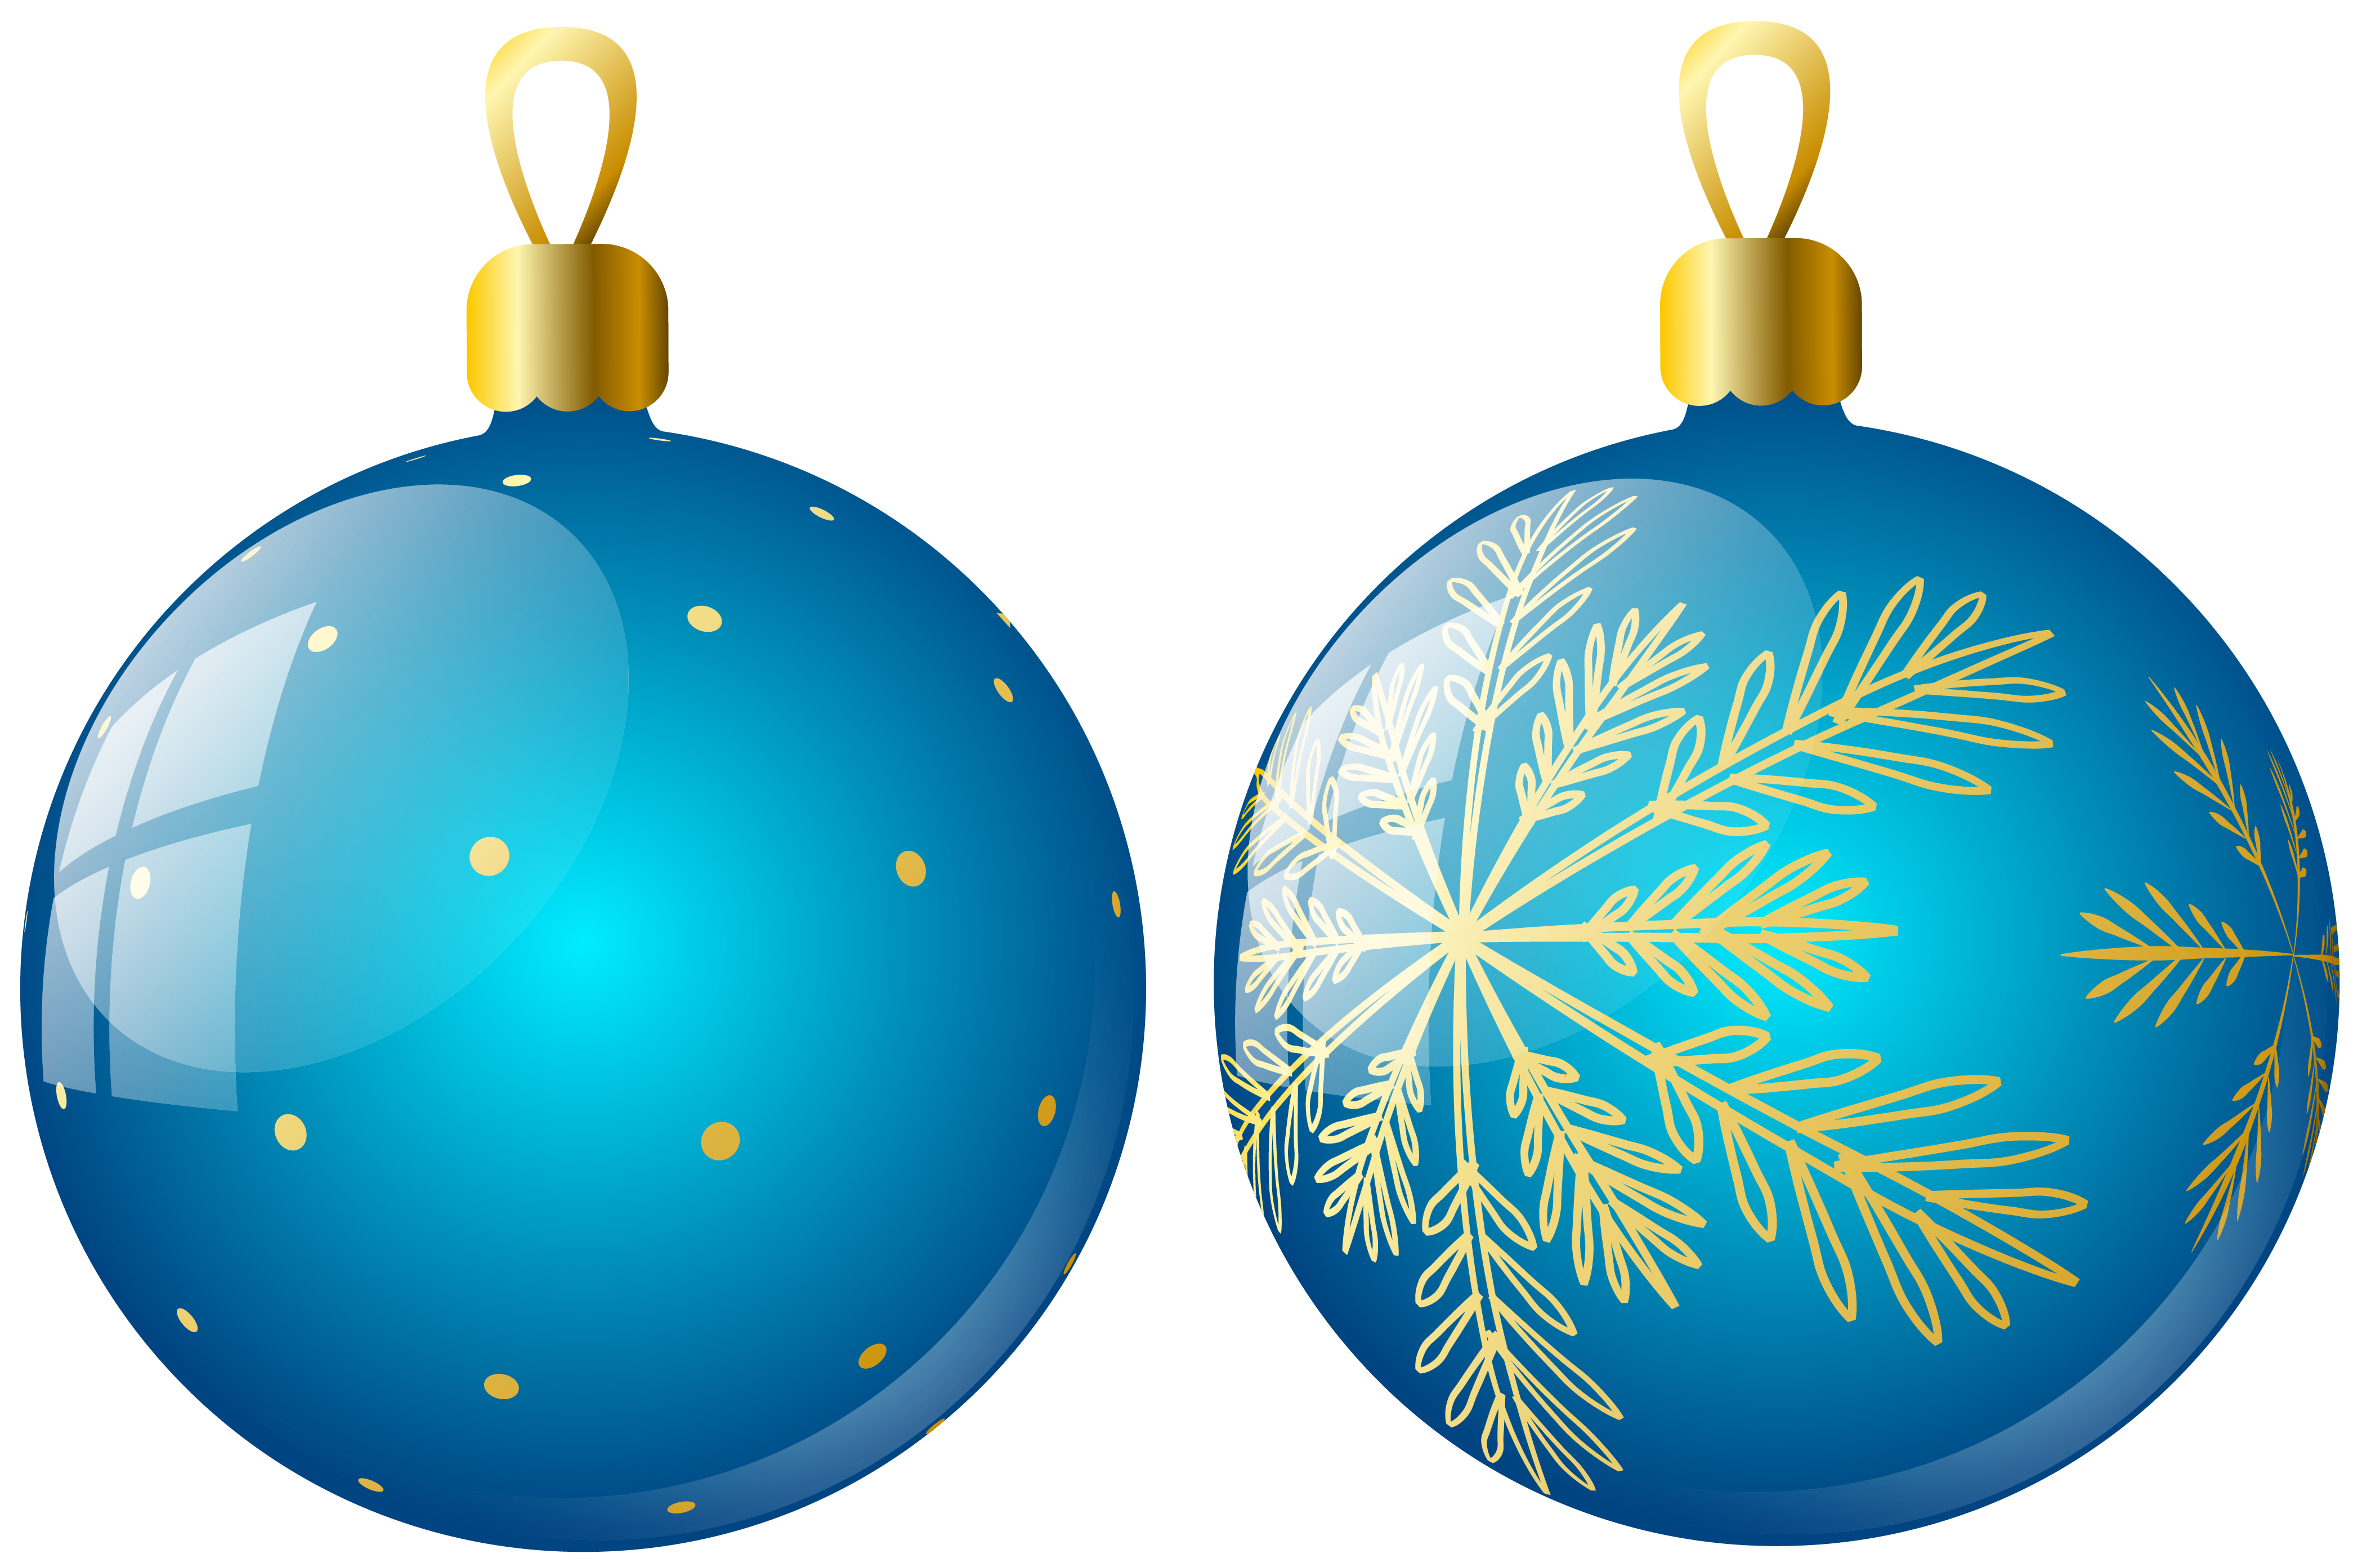 Transparent Two Blue Christmas Balls Ornaments Clipart Gallery Christmas Lights Clipart Photo Christmas Ornaments Christmas Ornaments